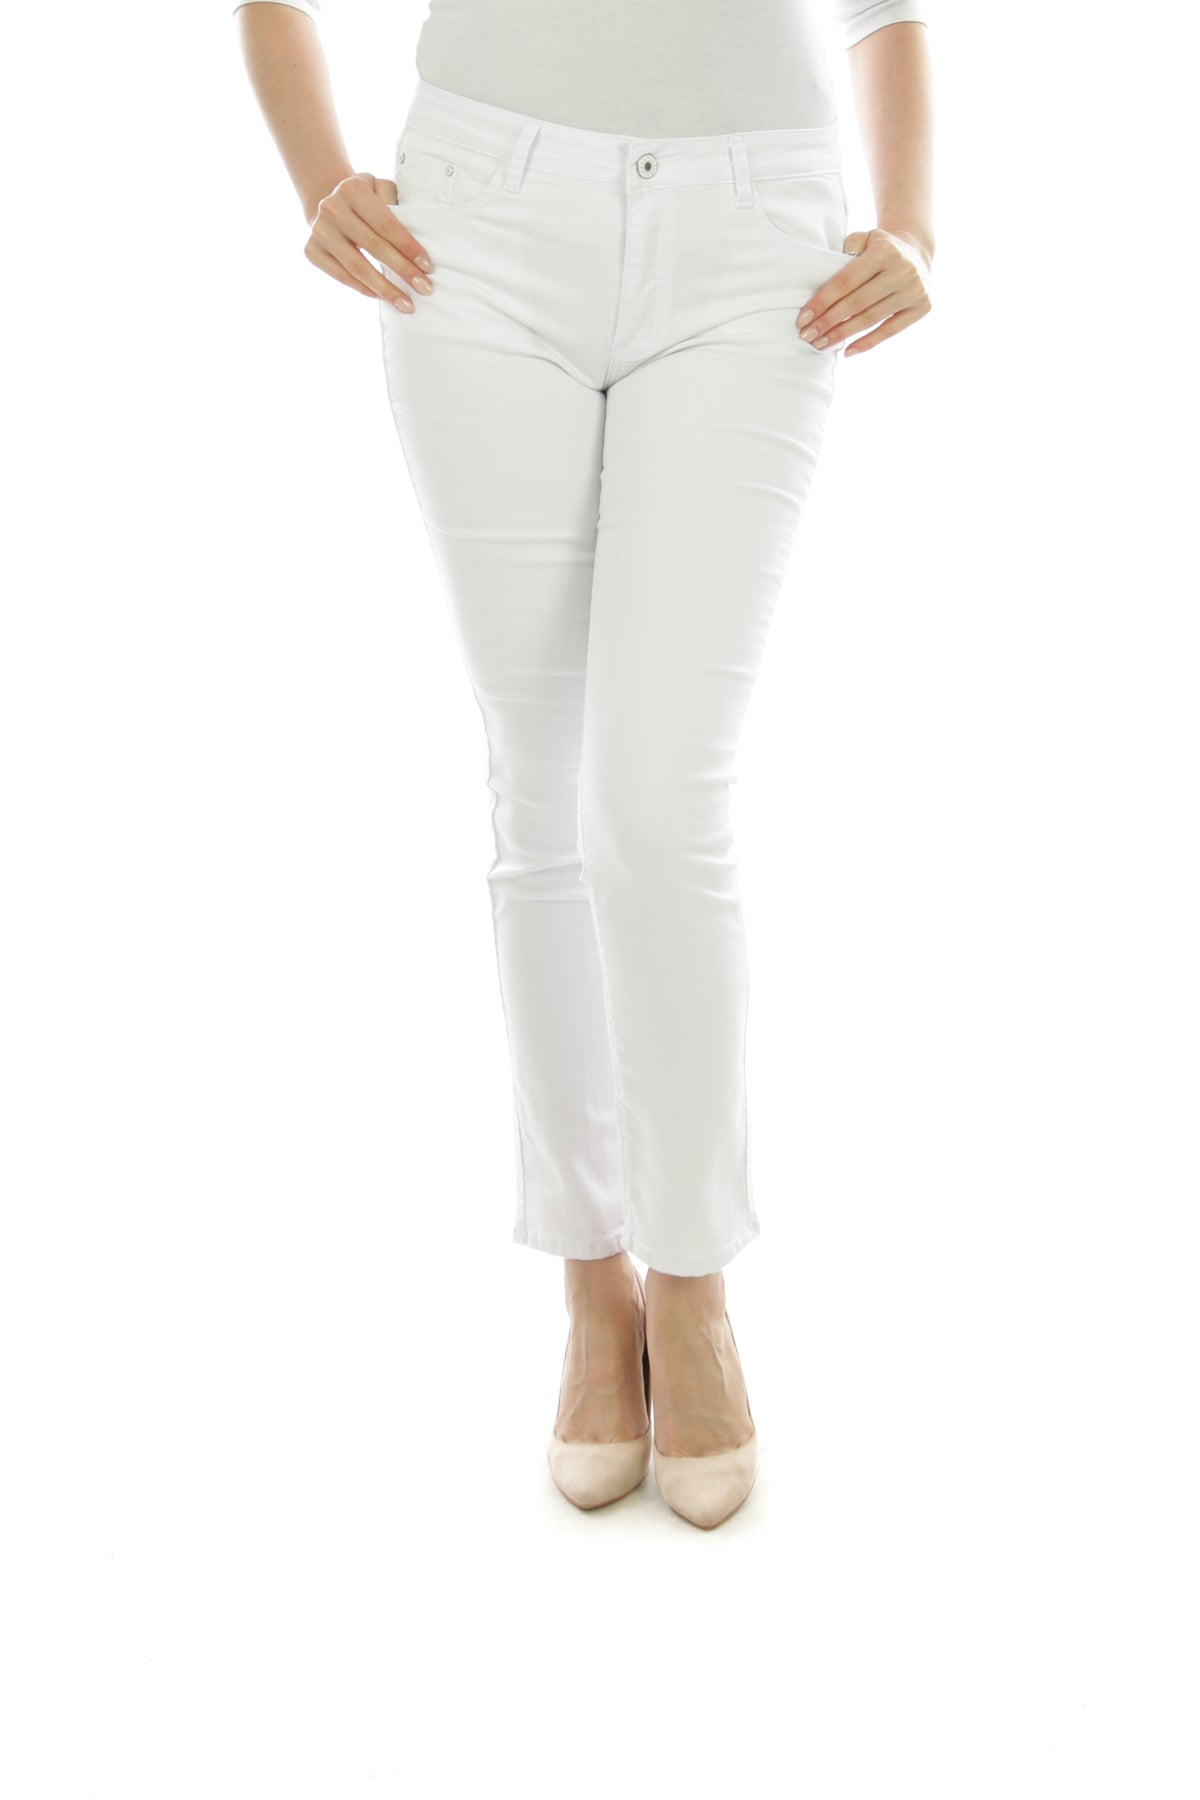 Wholesale White Straight Cut Jeggings